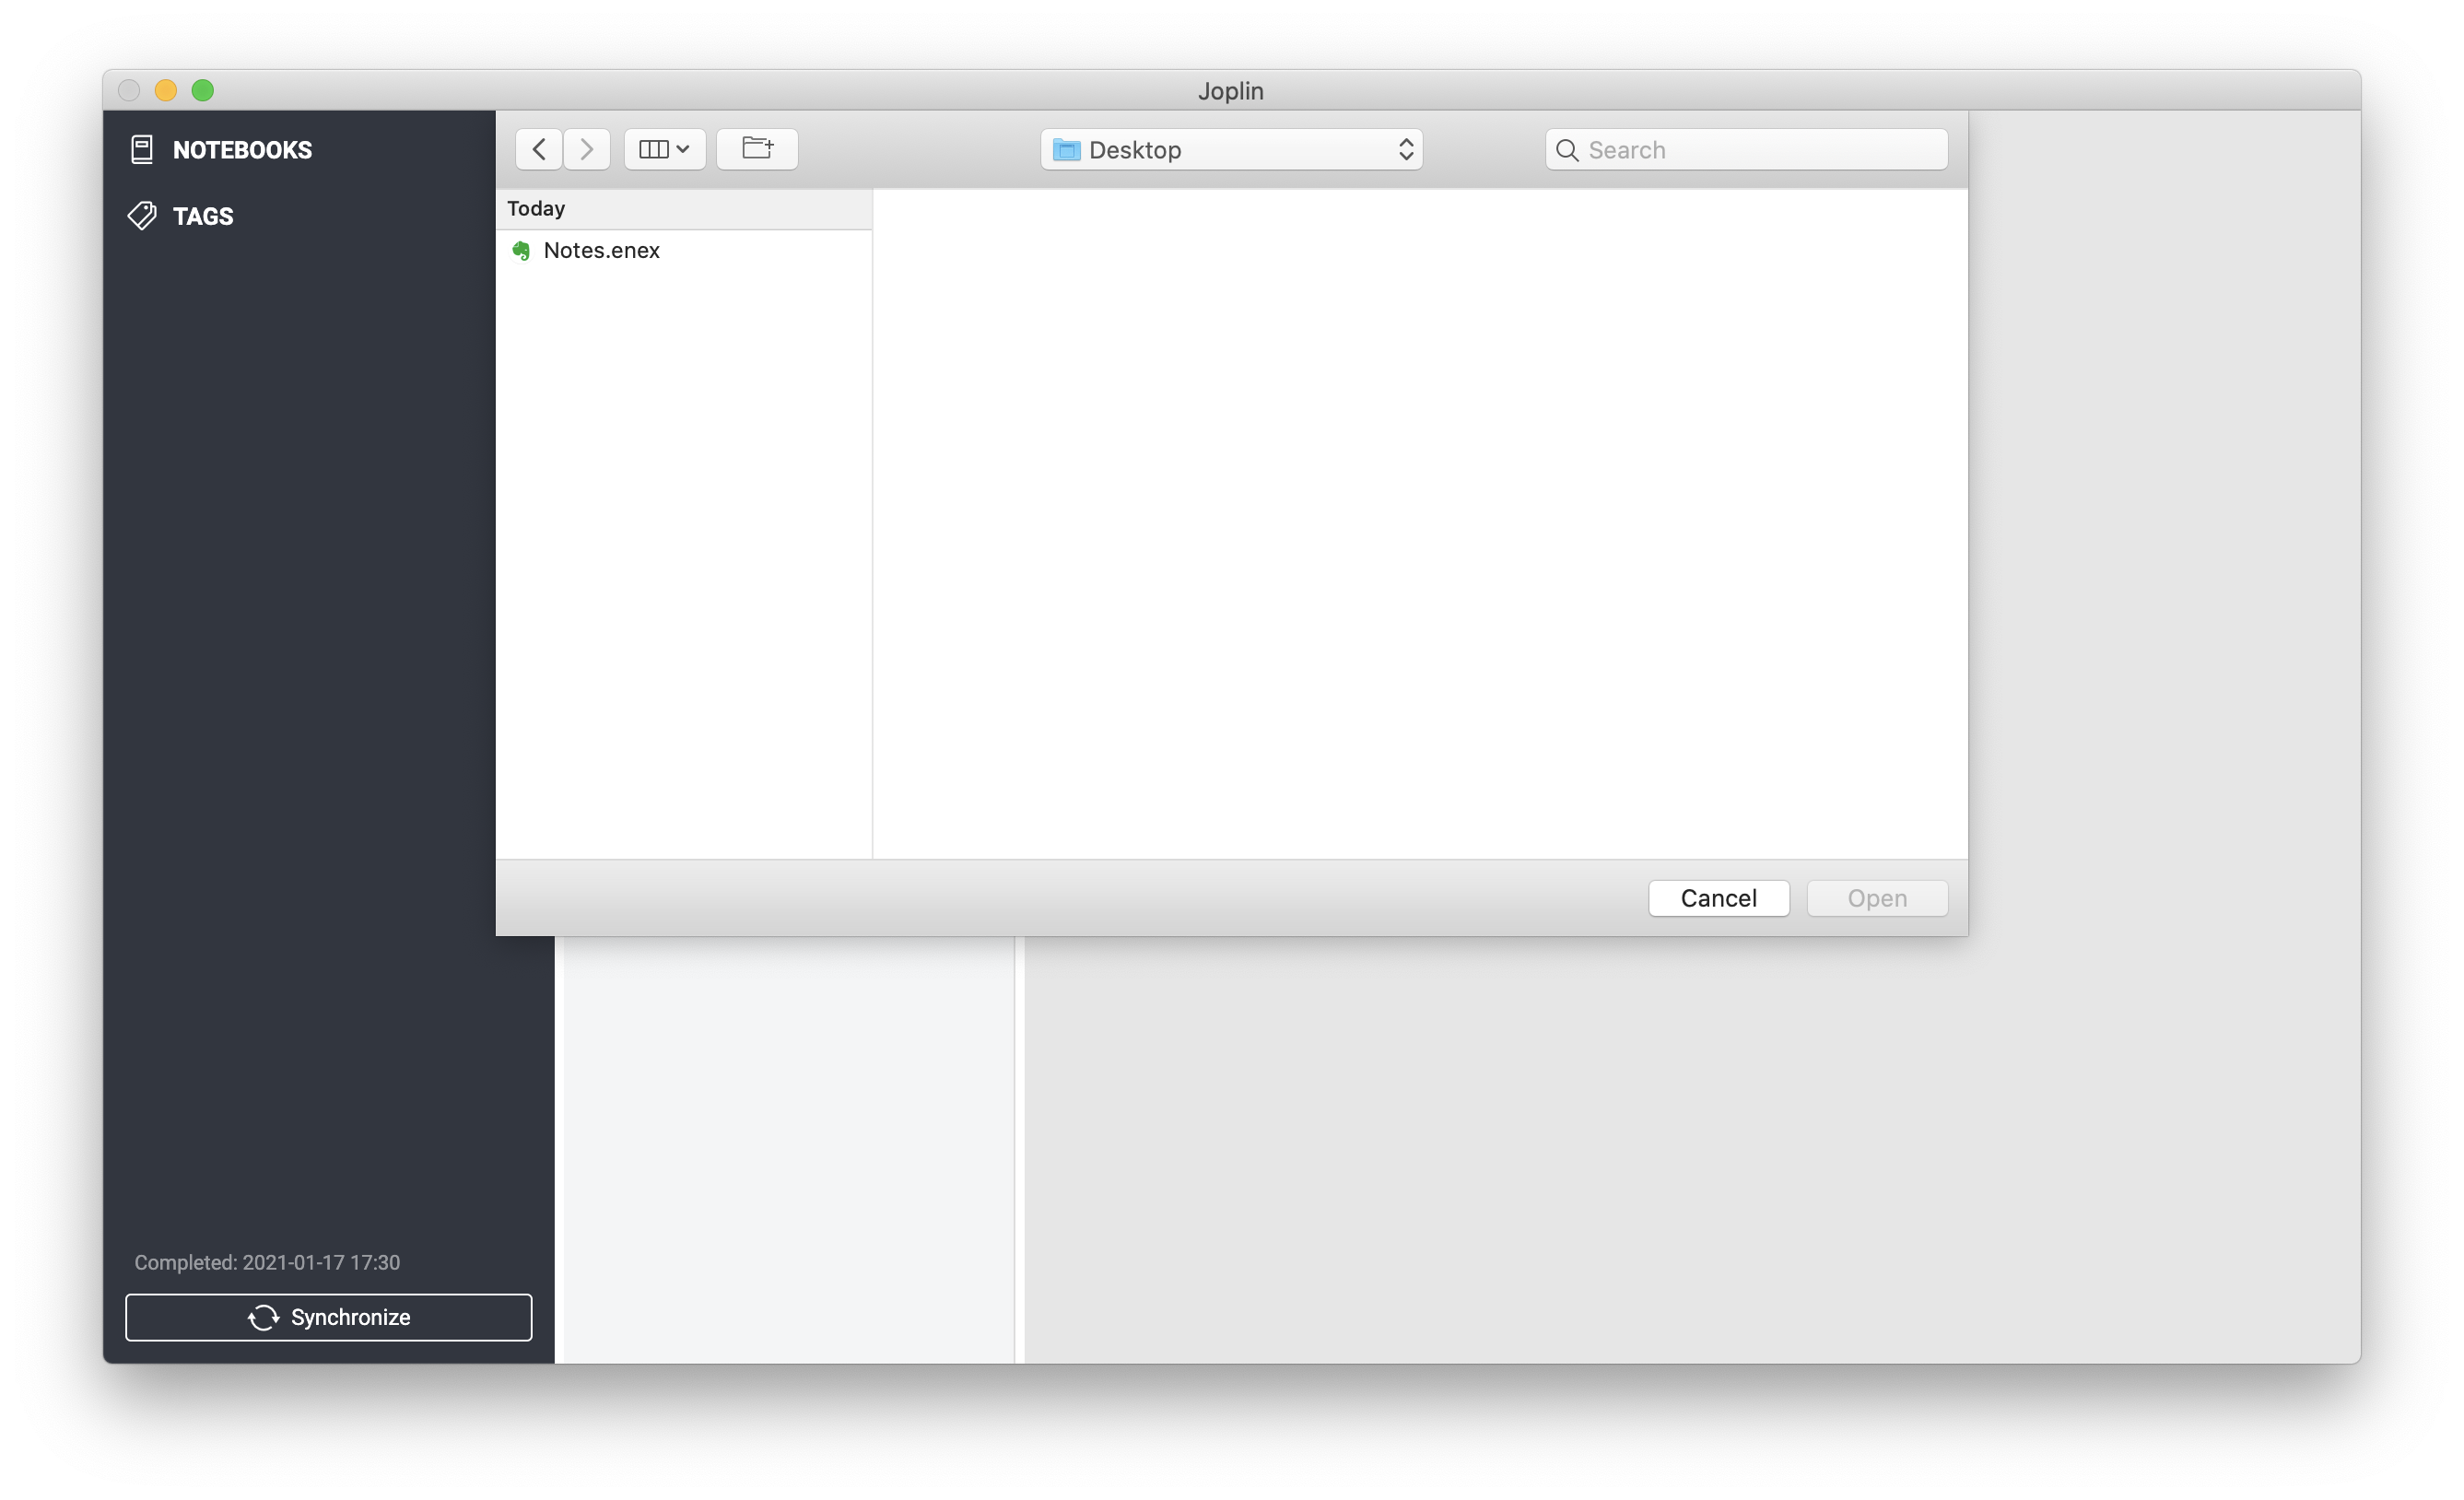 Joplin notes can be synced via ownCloud